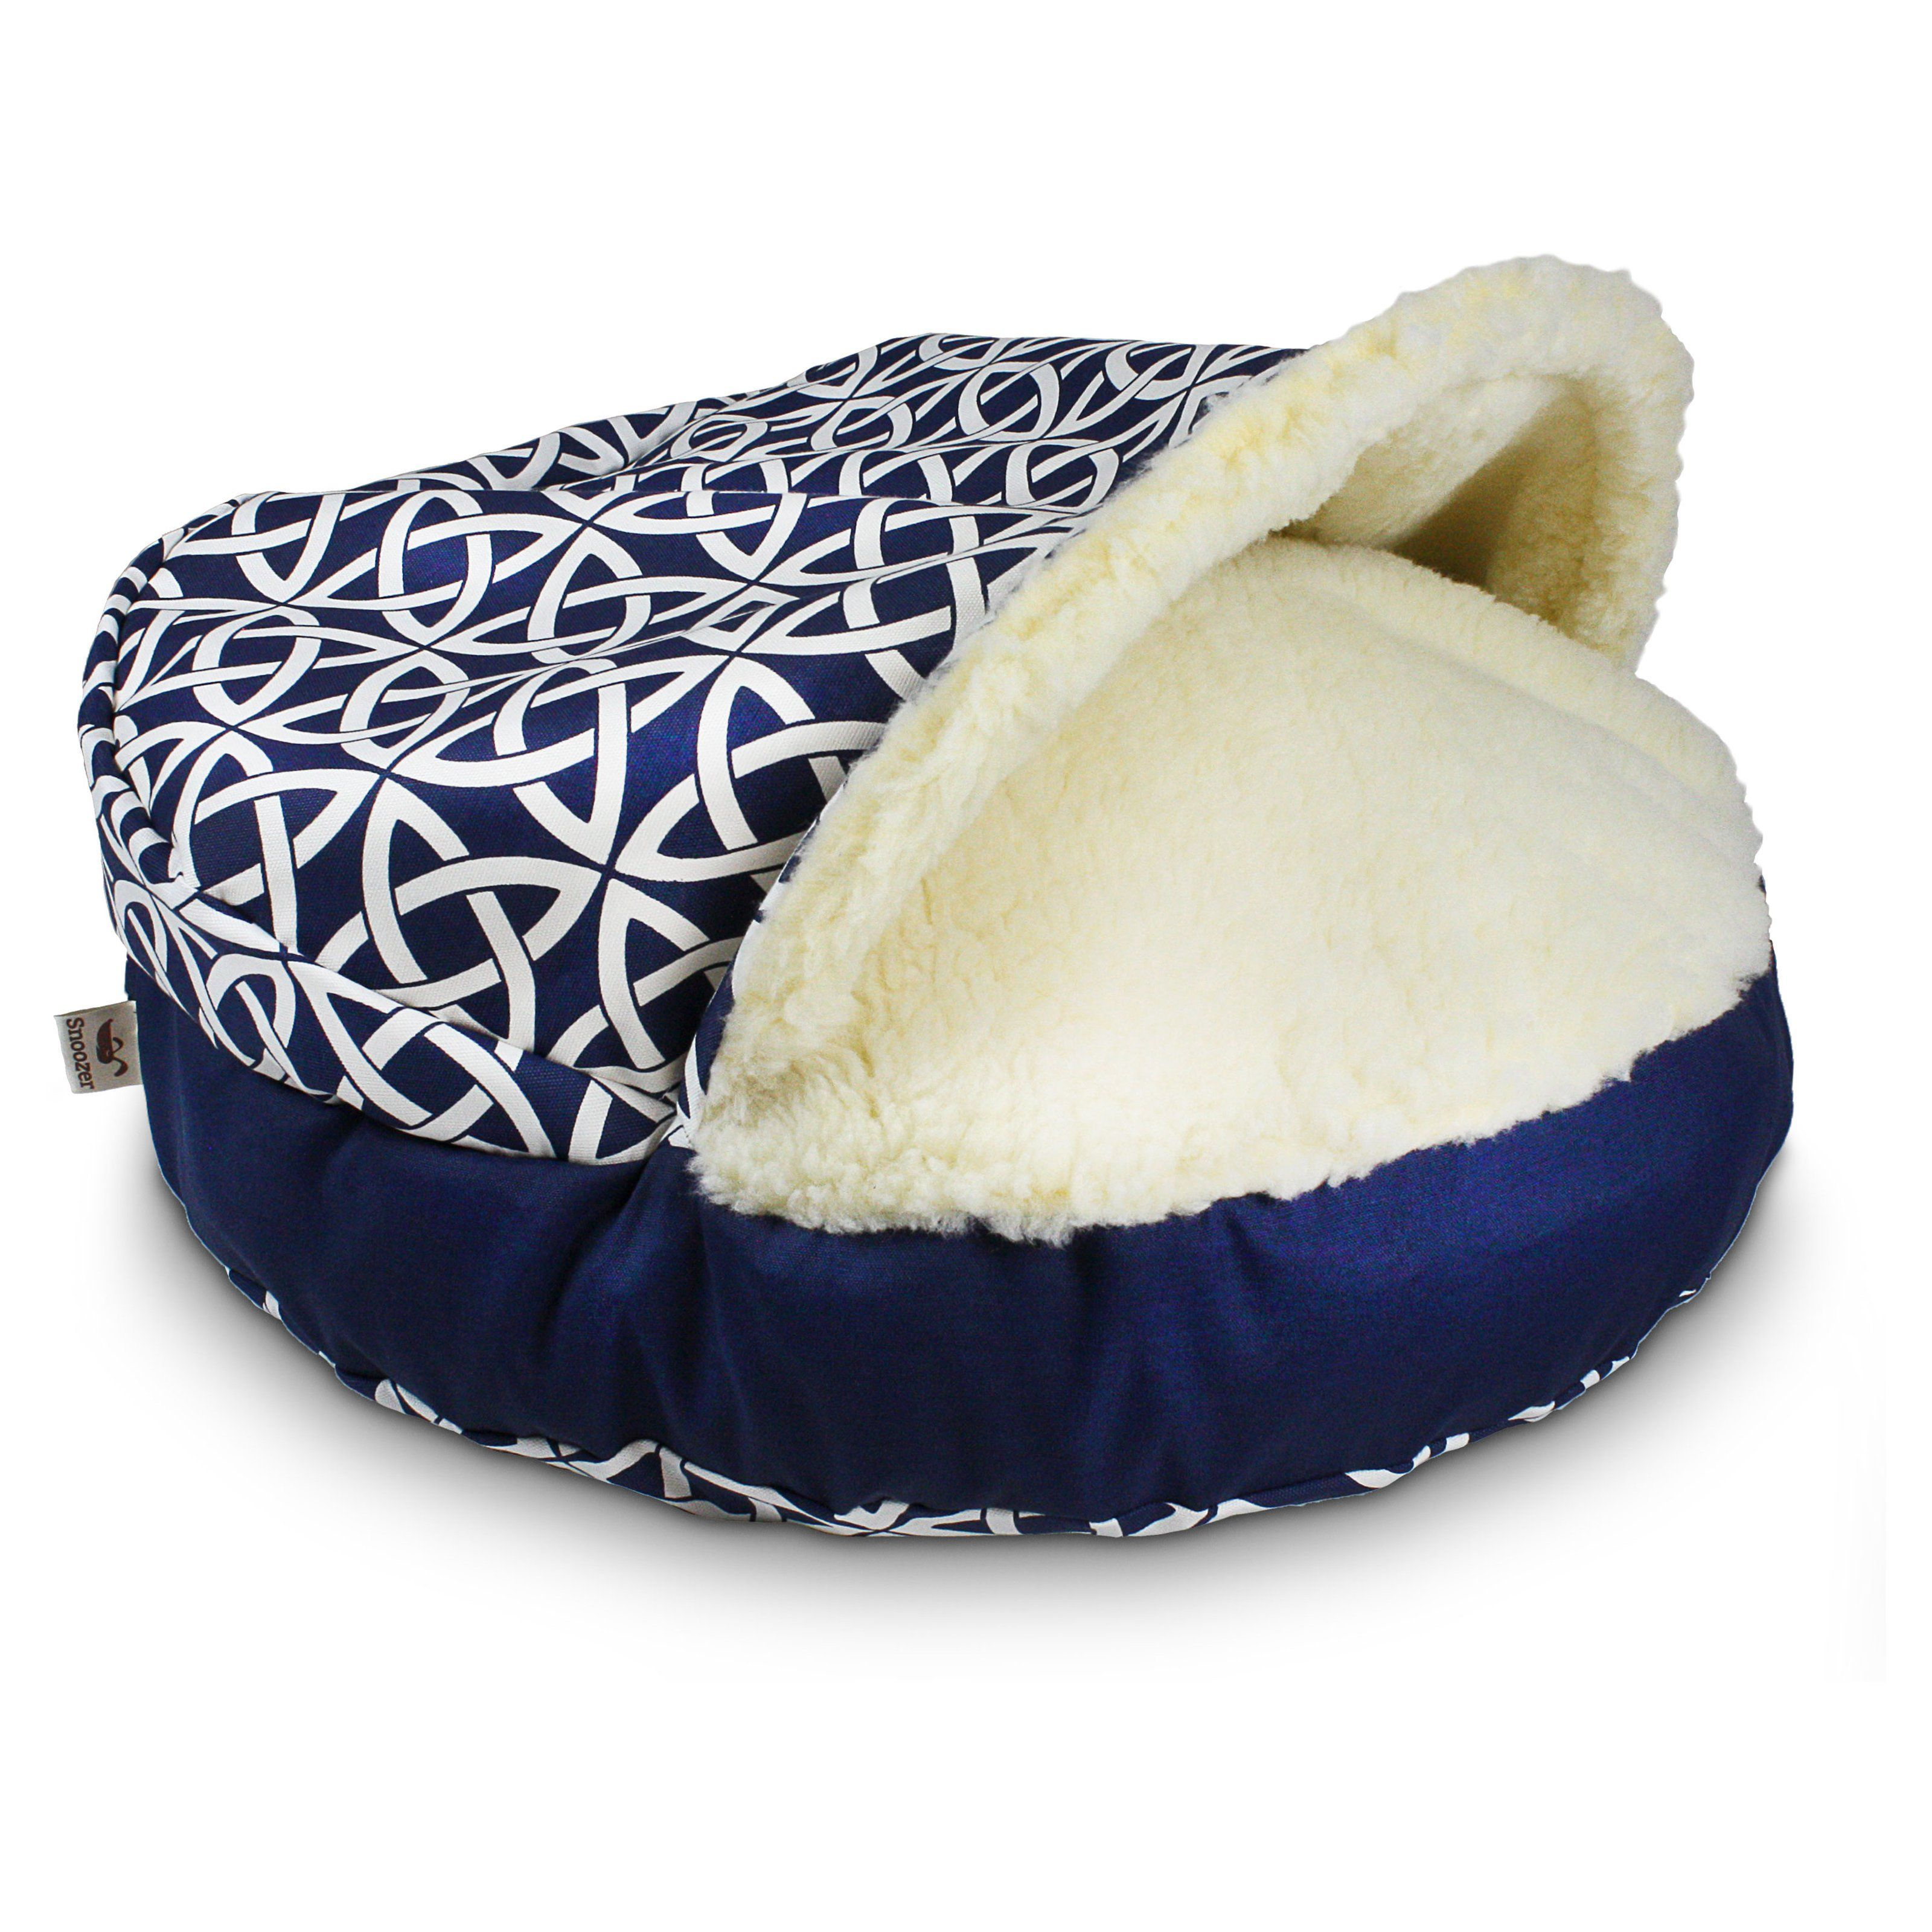 Snoozer Luxury Pool & Patio Cozy Cave Pet Bed from